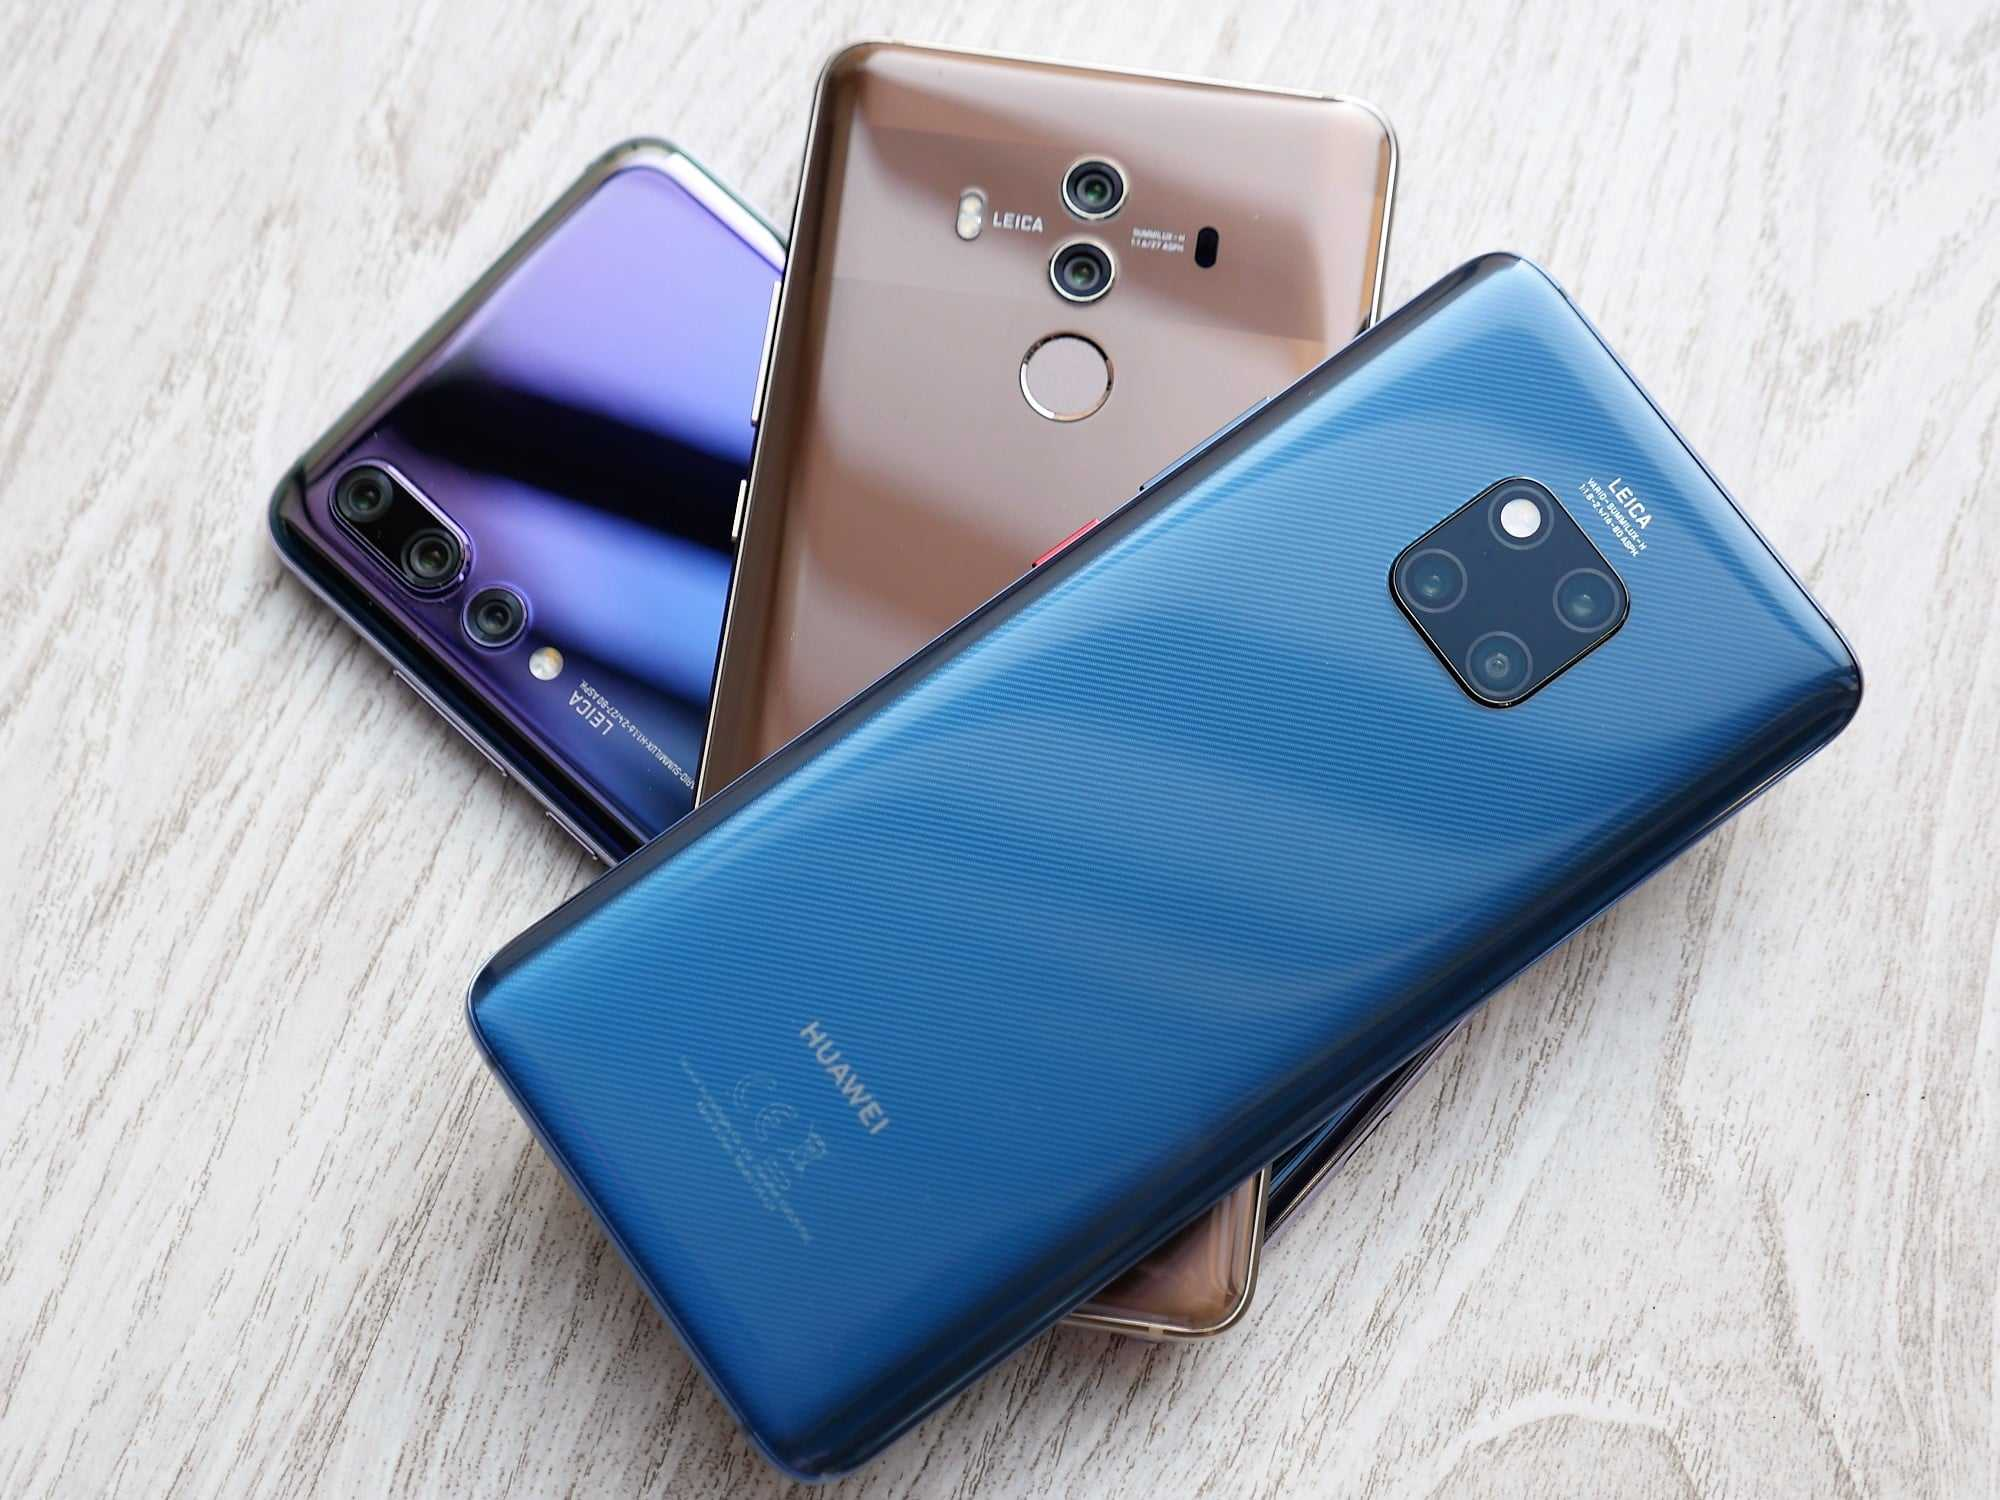 TOP 5 best smartphones in 2018 [review]